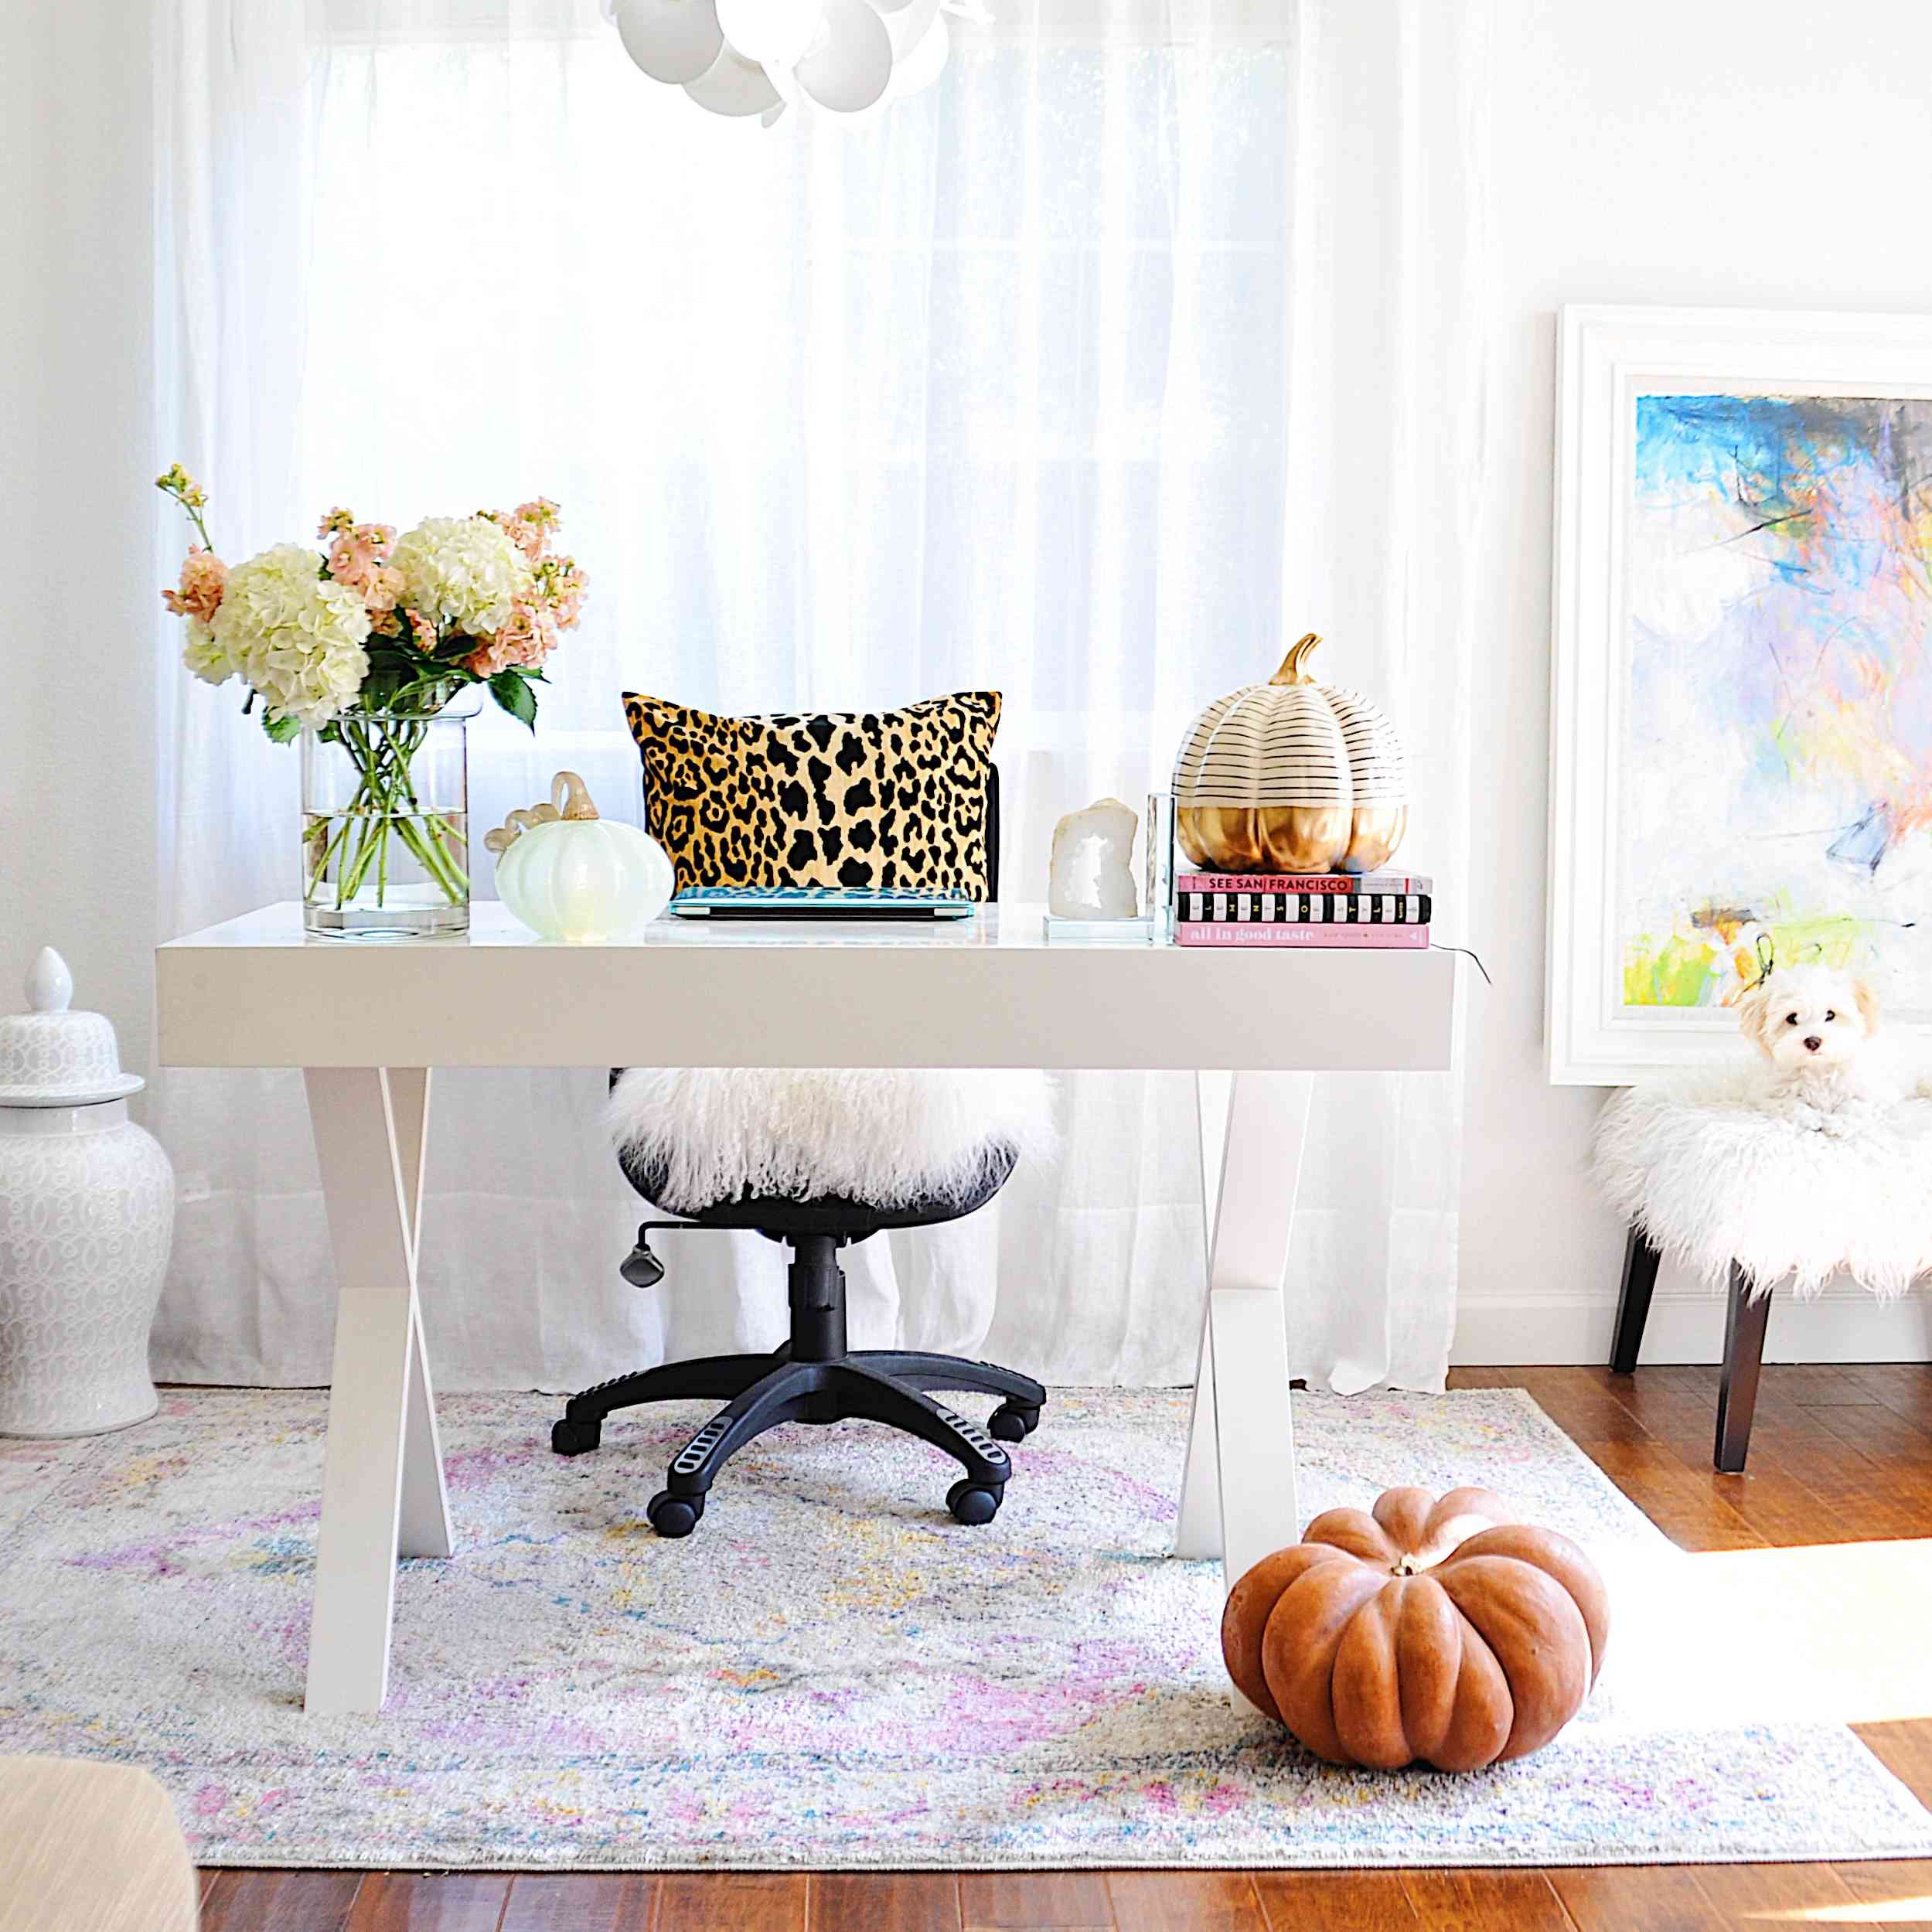 Home office decorated for Thanksgiving.